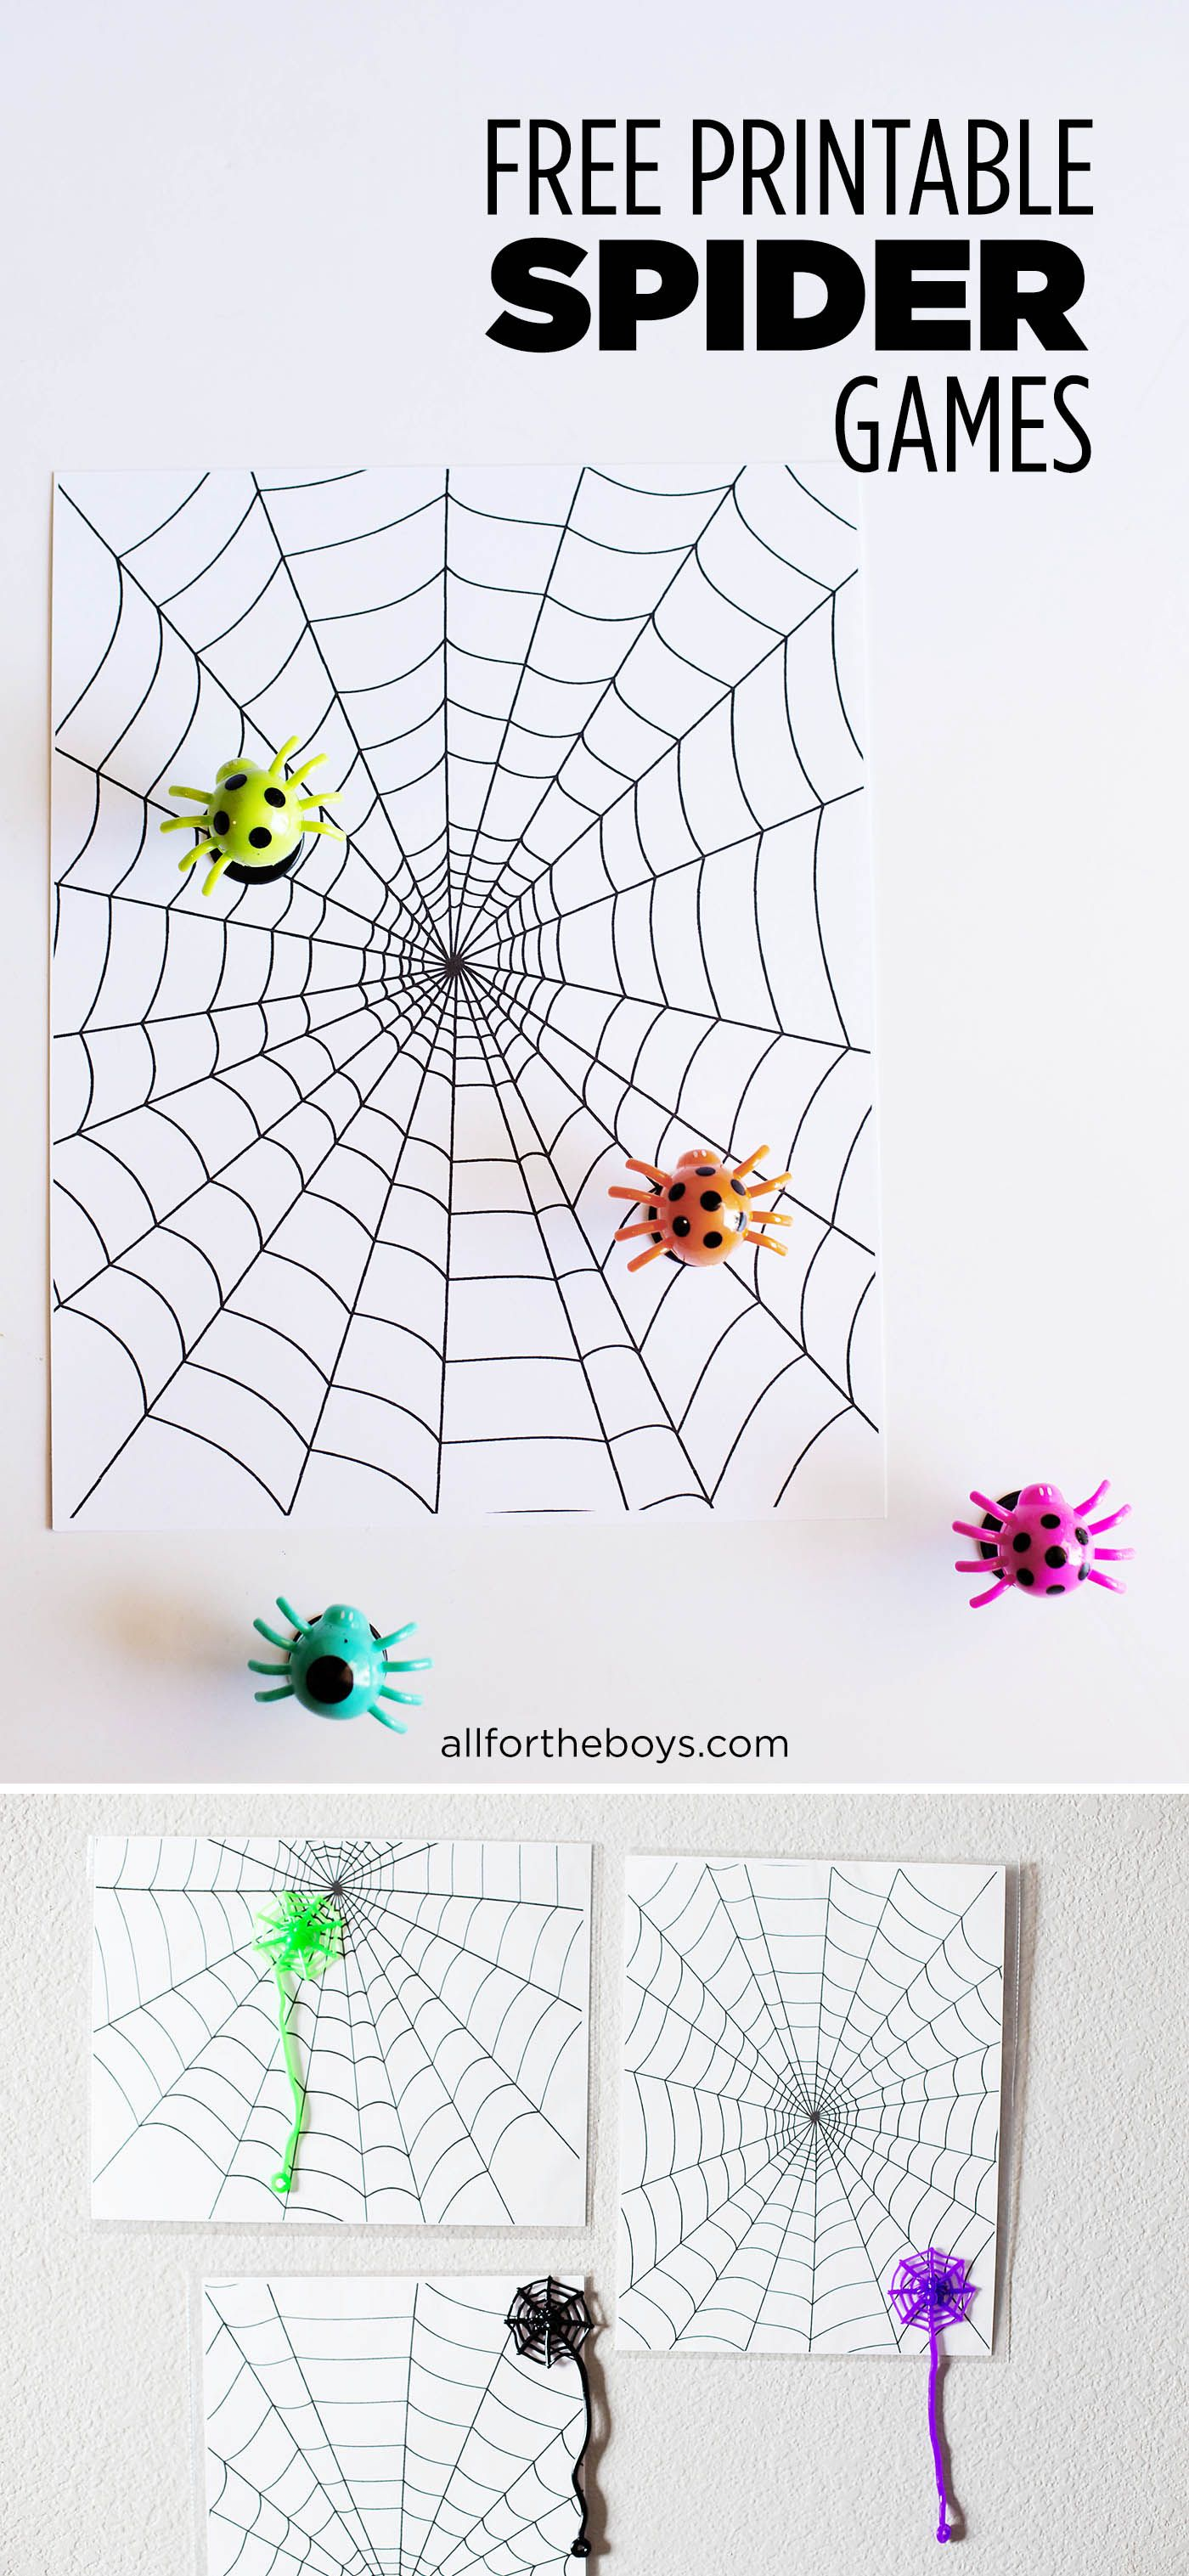 Printable Spider Games | Spider games, Halloween parties and Spider